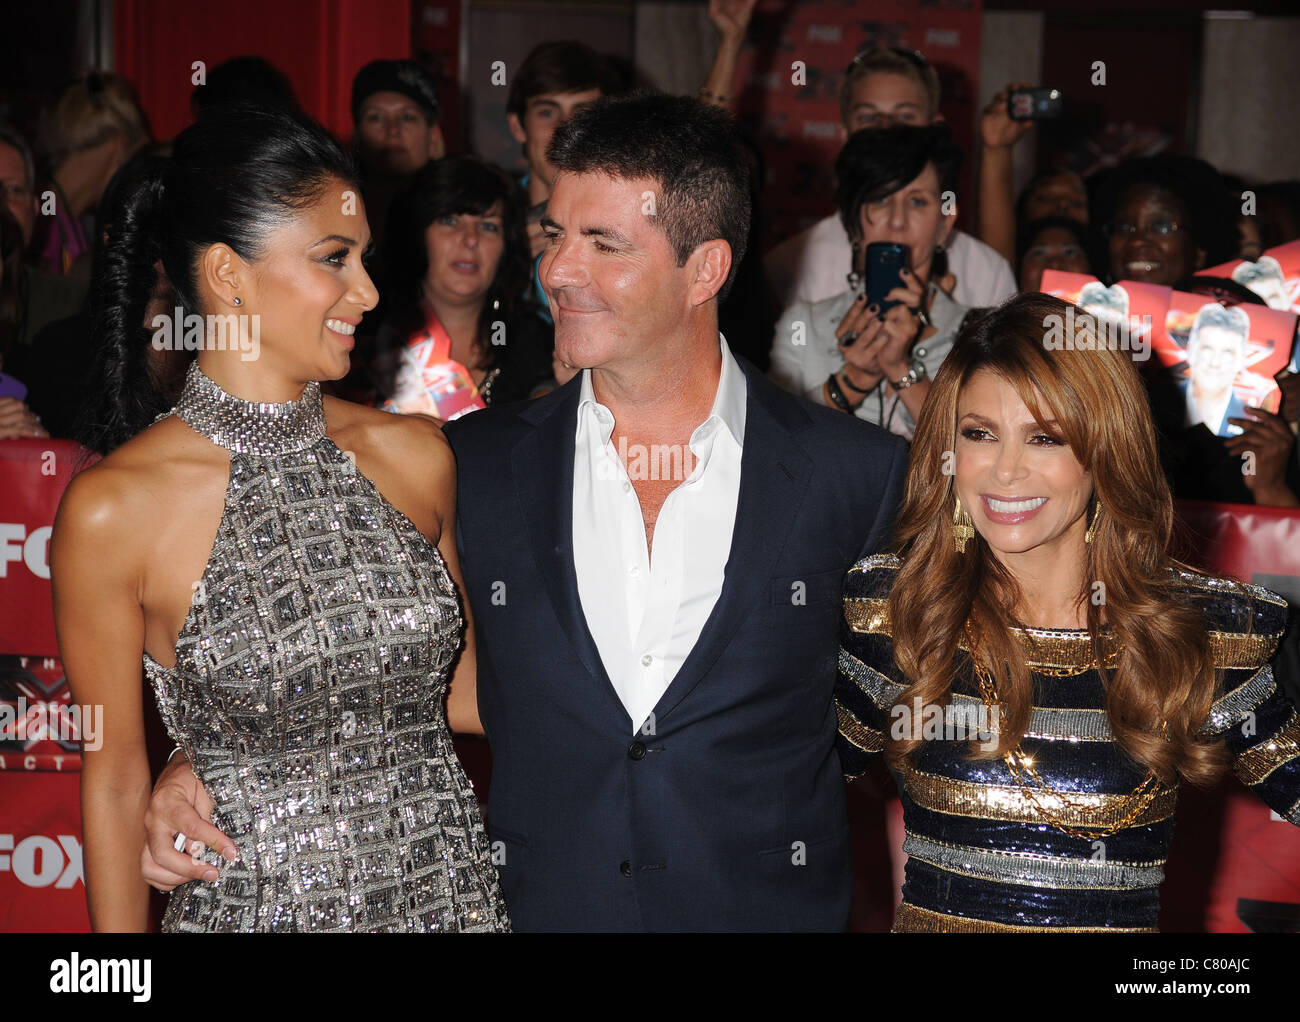 THE X FACTOR (US) Simon Cowell  judges singer Paula Abdul at right and singer Nicole Scherzinger in 2011. Photo - Stock Image